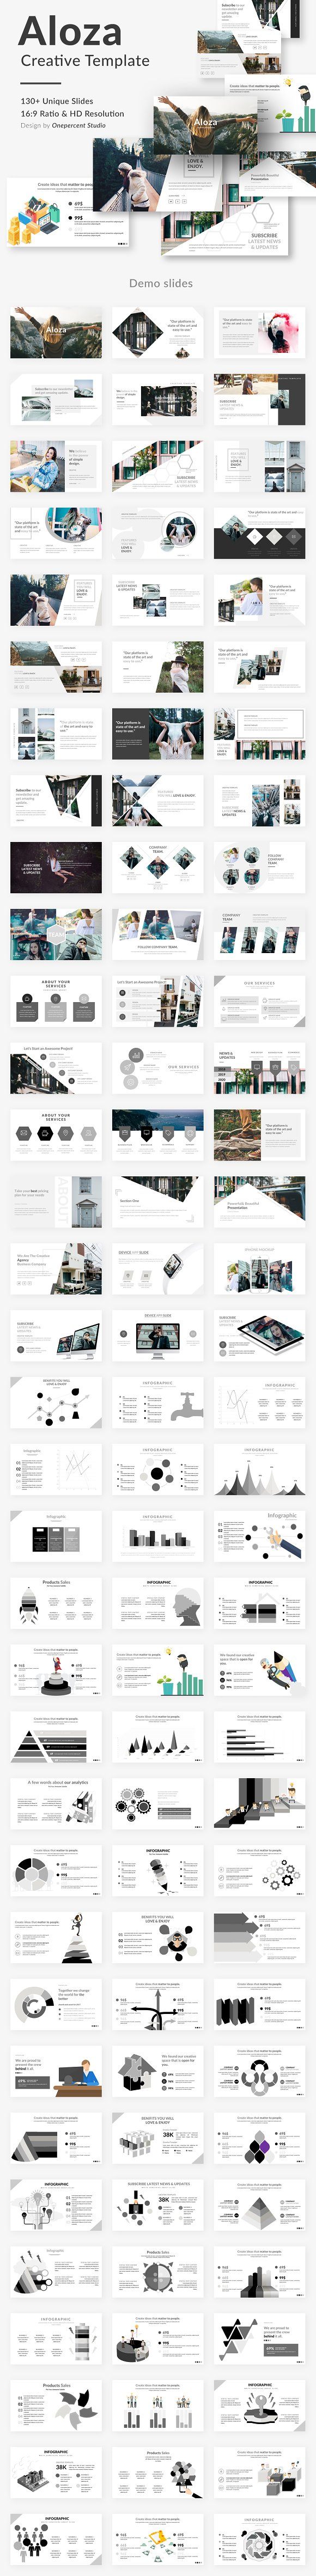 Aloza Creative Powerpoint Template